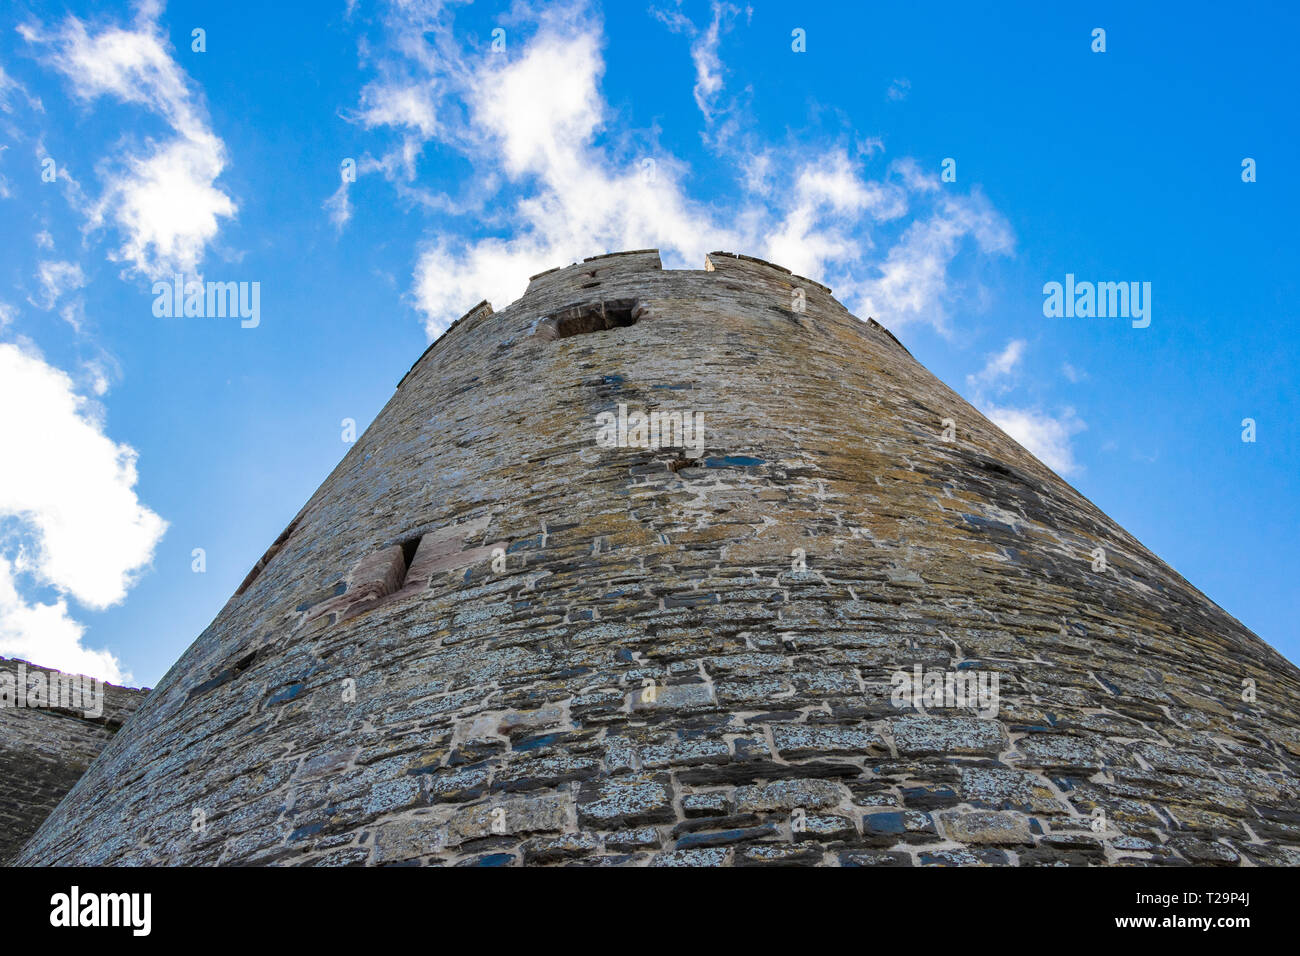 perspective view looking up a stone tower of Conwy Castle North wales - Stock Image